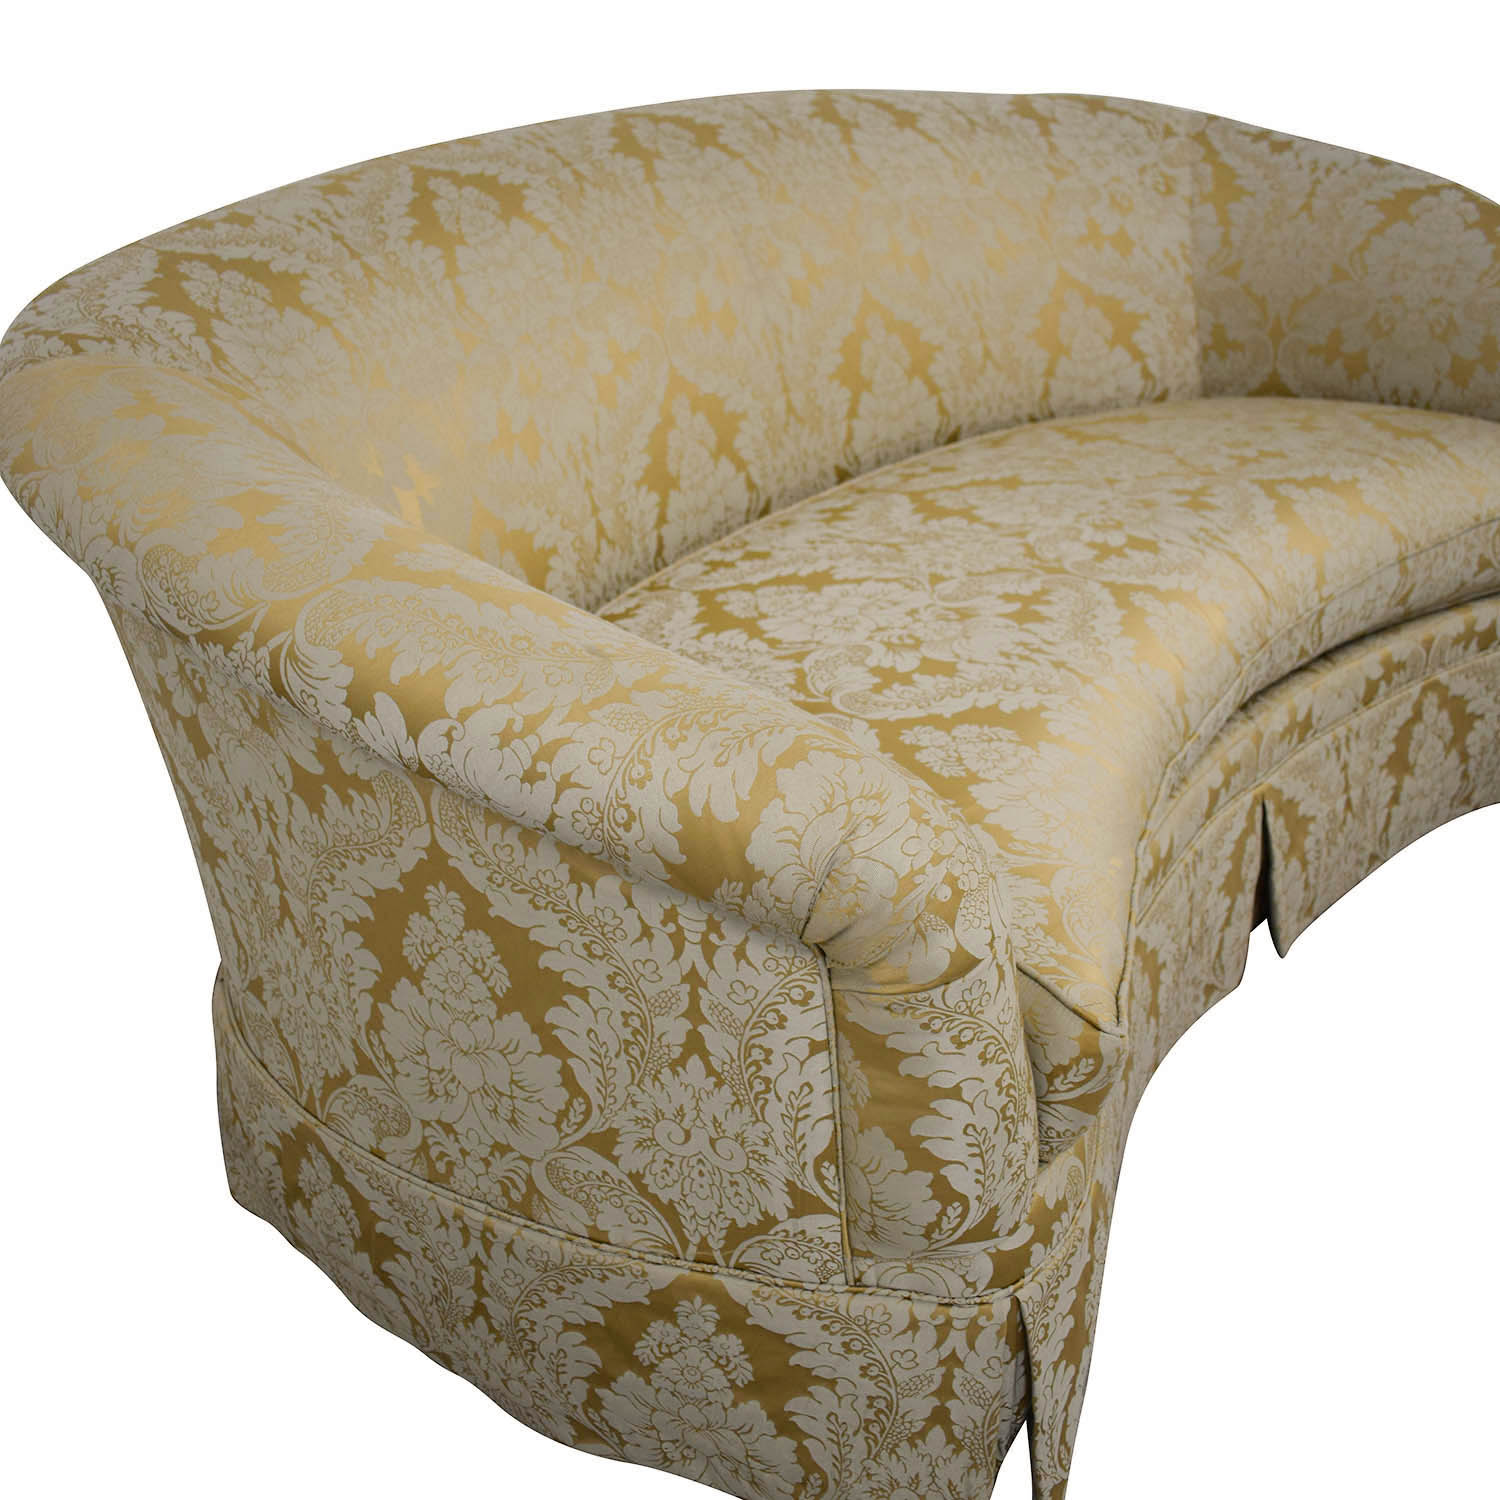 Drexel Heritage Drexel Heritage Curved Loveseat on sale